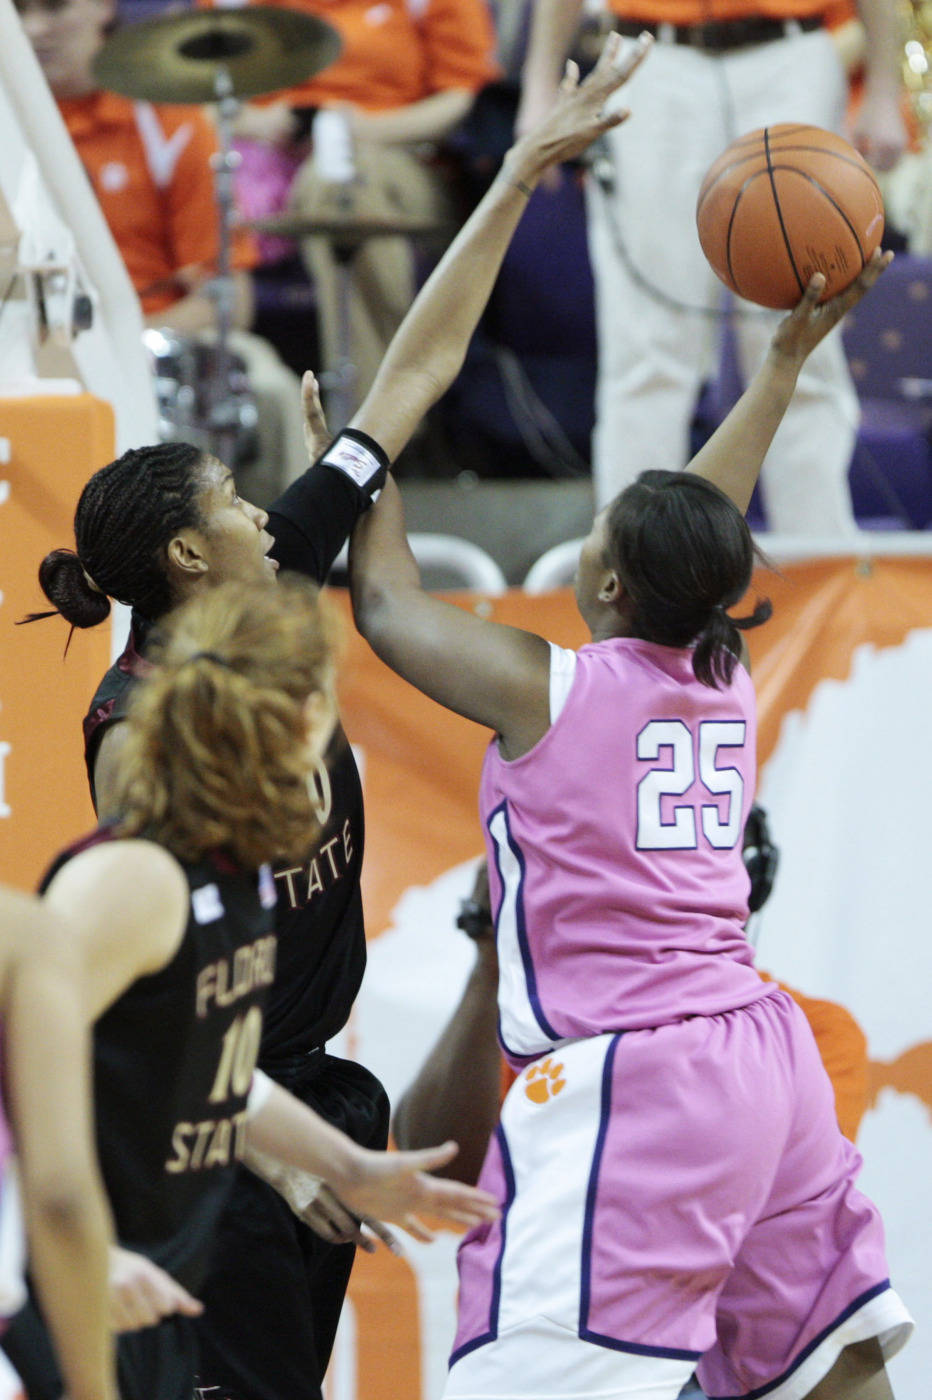 Clemson's Whitney Hood shoots as Jacinta Monroe defends during the first half in Clemson, S.C., Thursday, Feb. 19, 2009. (AP Photo/Patrick Collard)